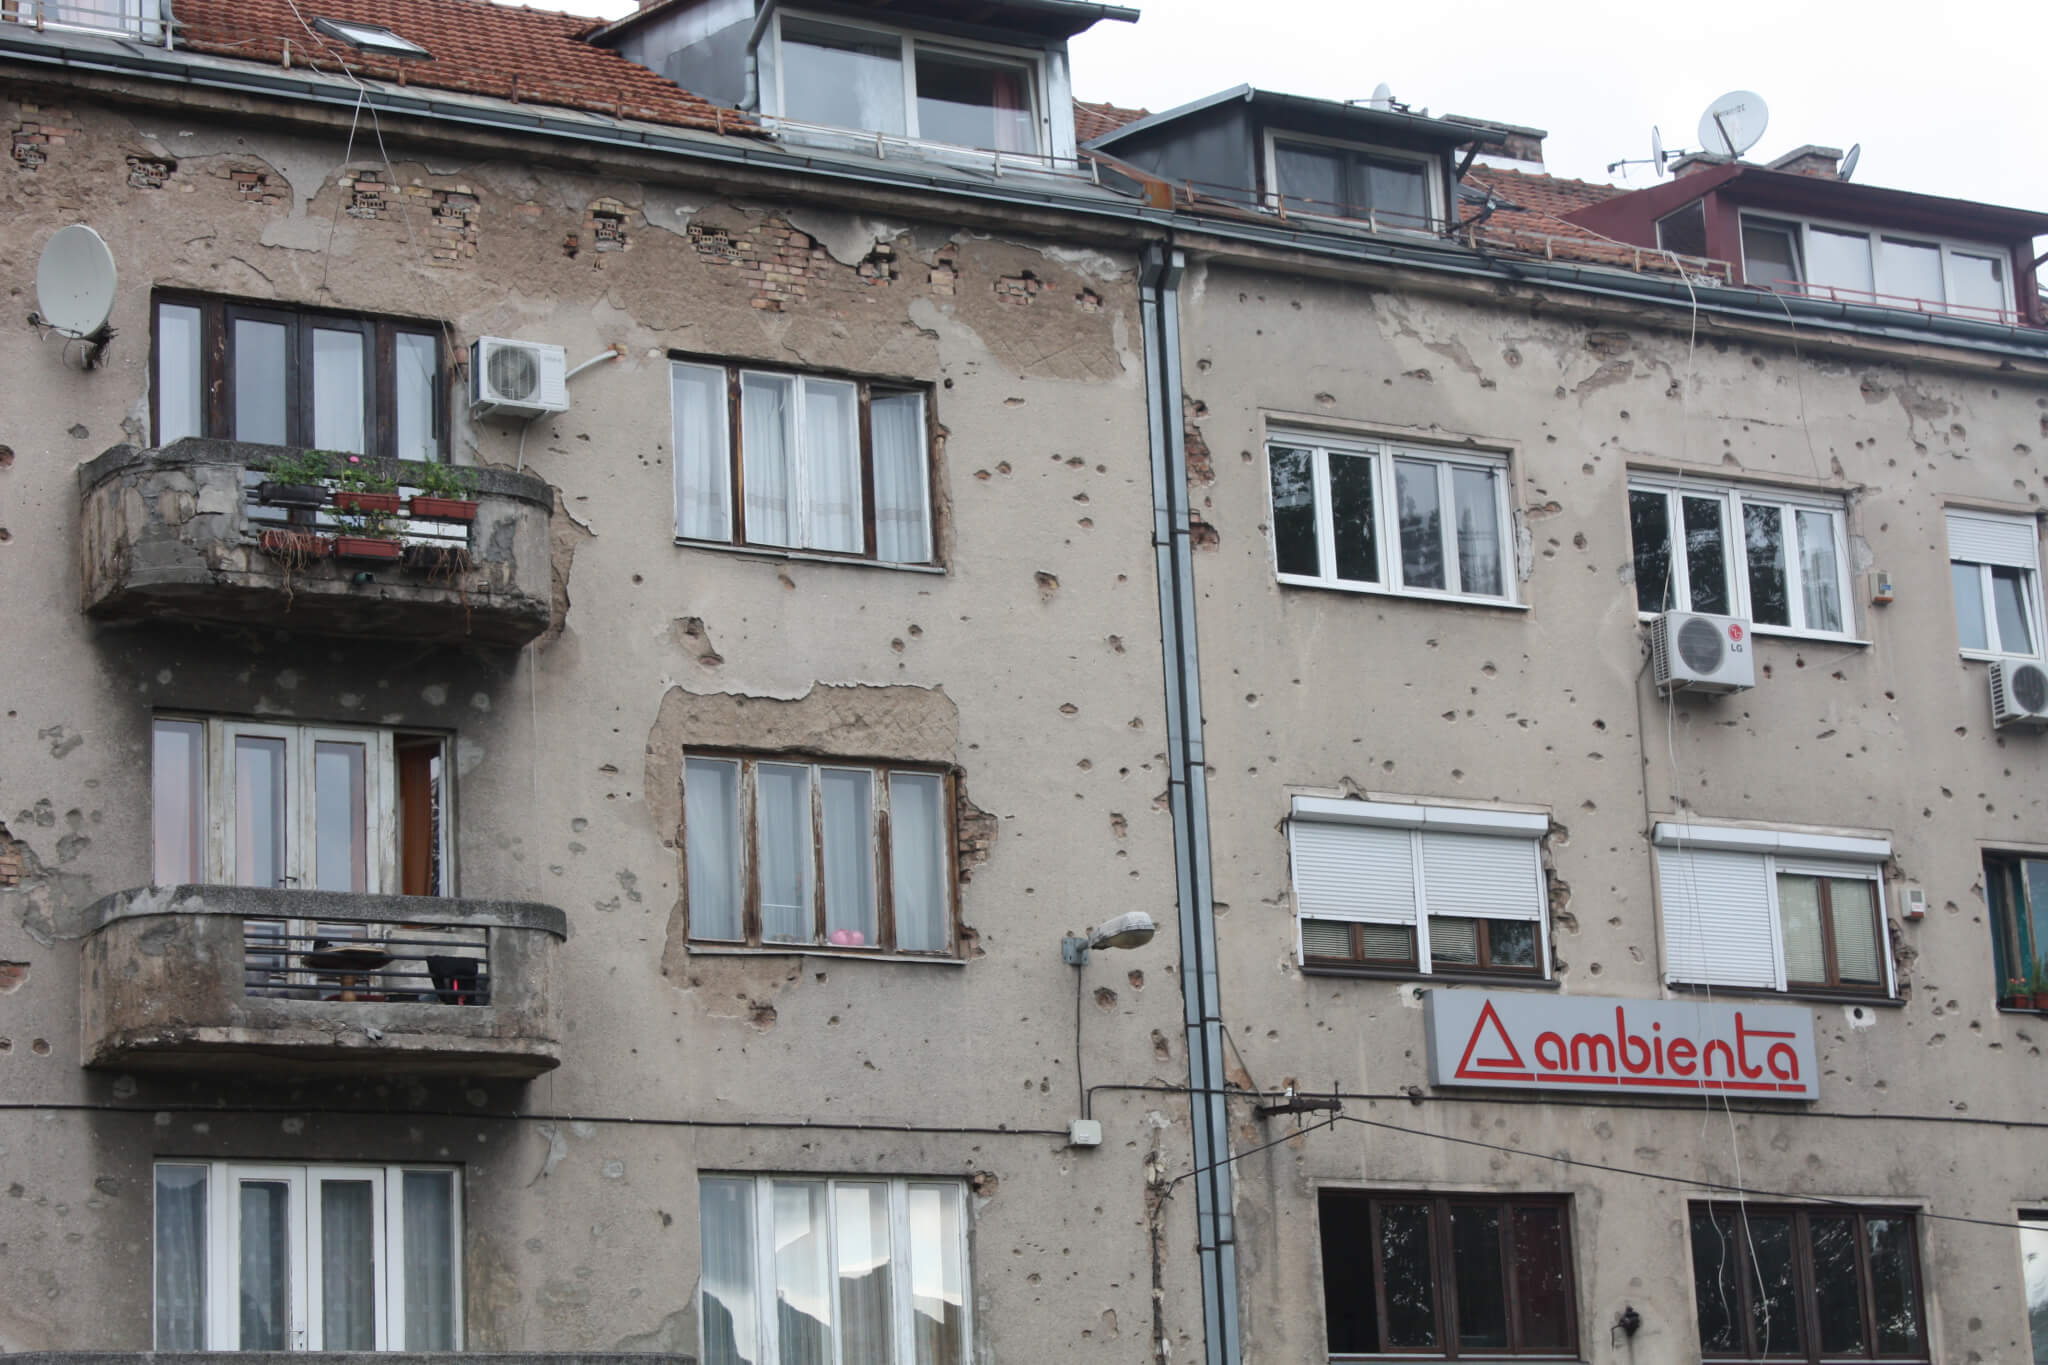 Building close to Vrbanja bridge, Sarajevo